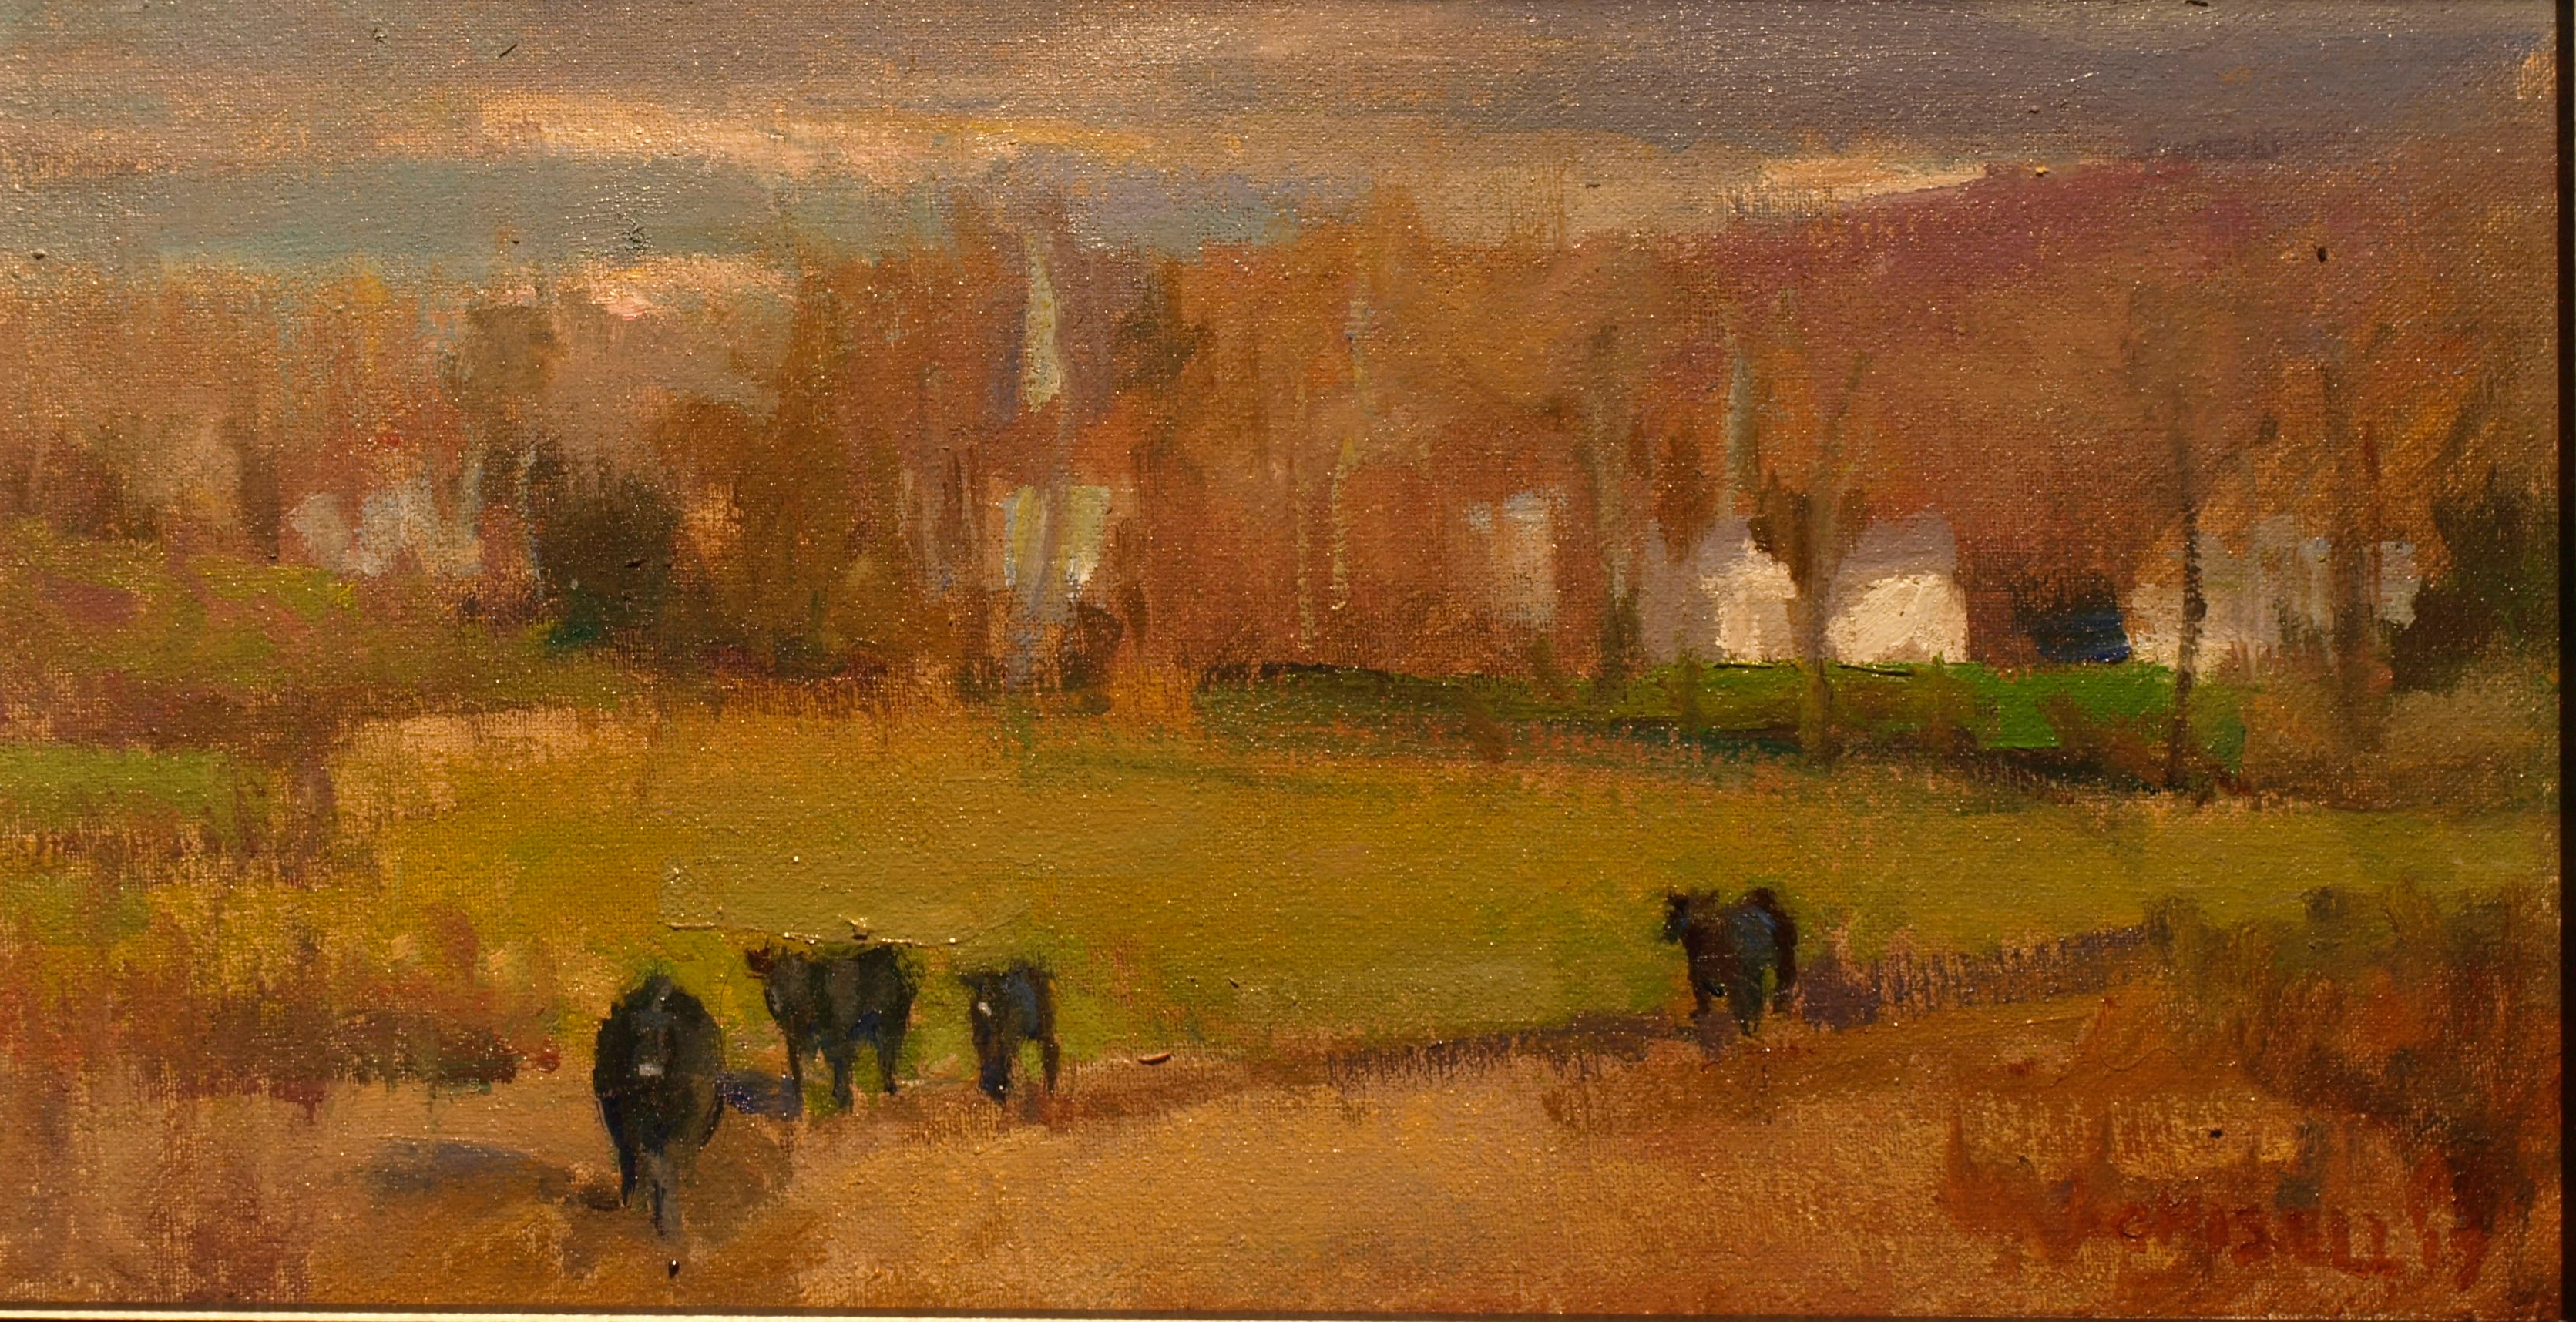 Pasture in Gaylordsville, Oil on Canvas on Panel, 9 x 16 Inches, by Susan Grisell, $275